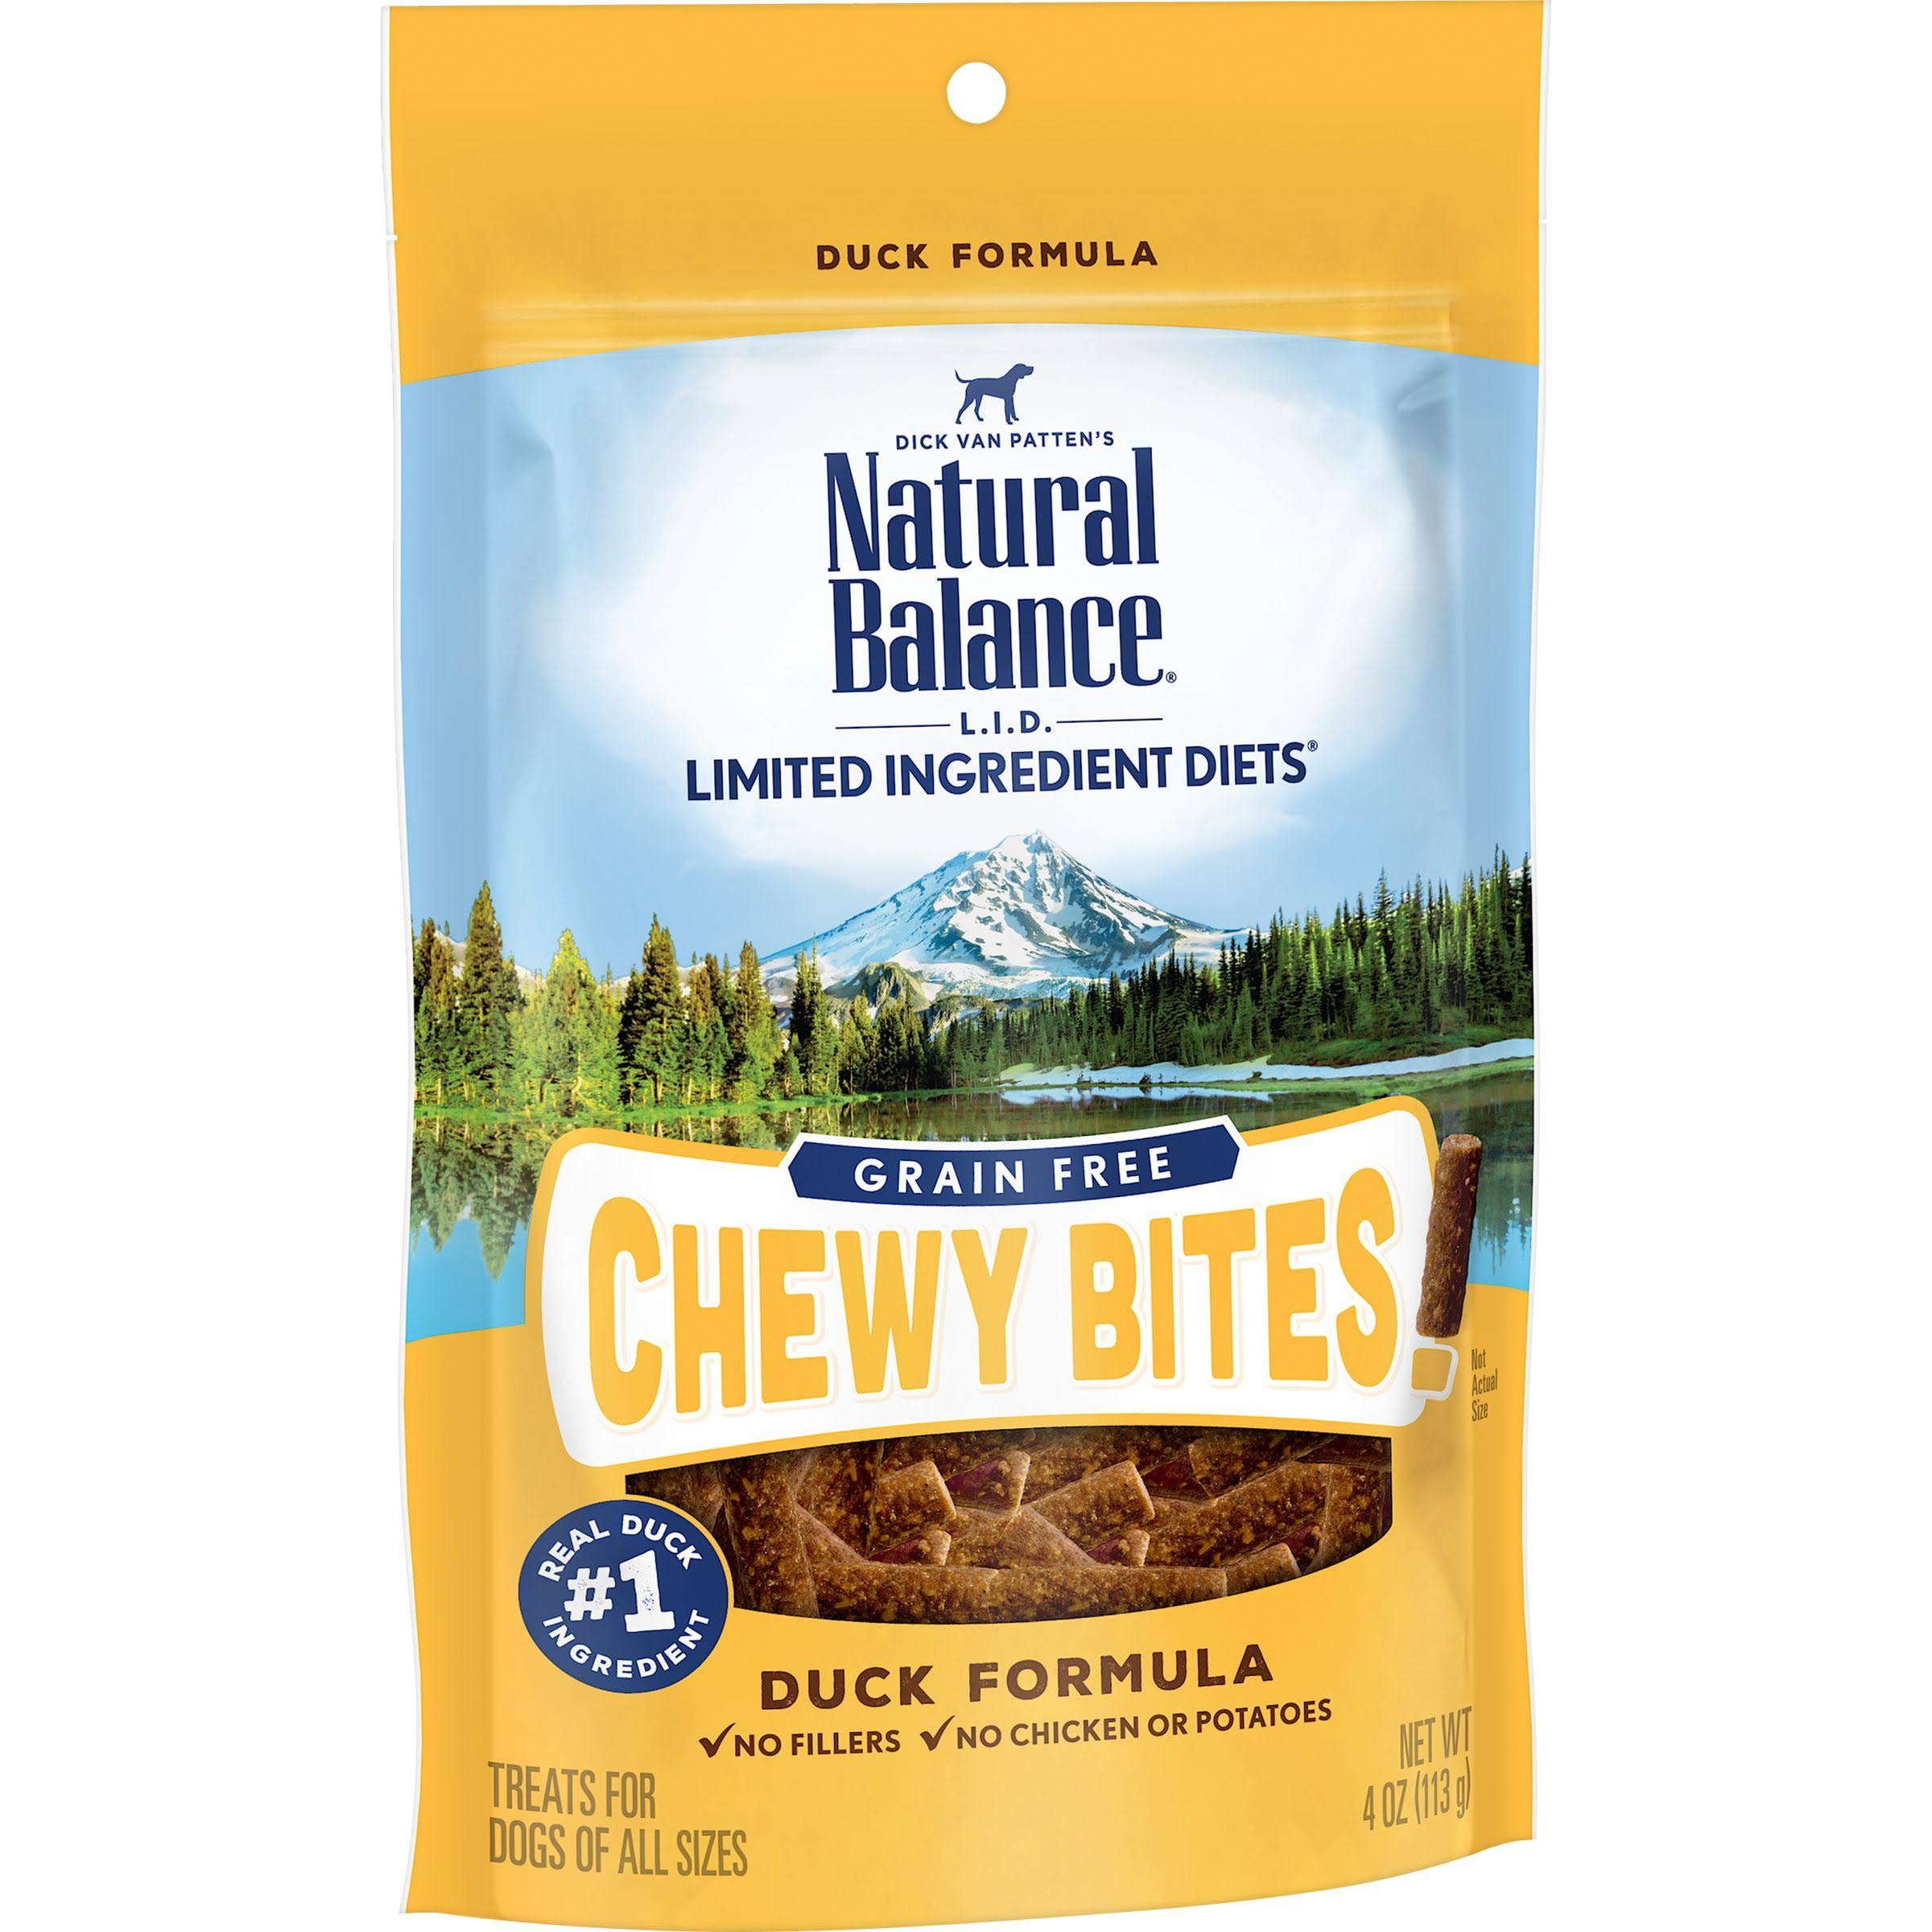 Natural Balance L.I.D. Limited Ingredient Diets Grain Free Chewy Bites Duck Formula Dog Treats 4oz